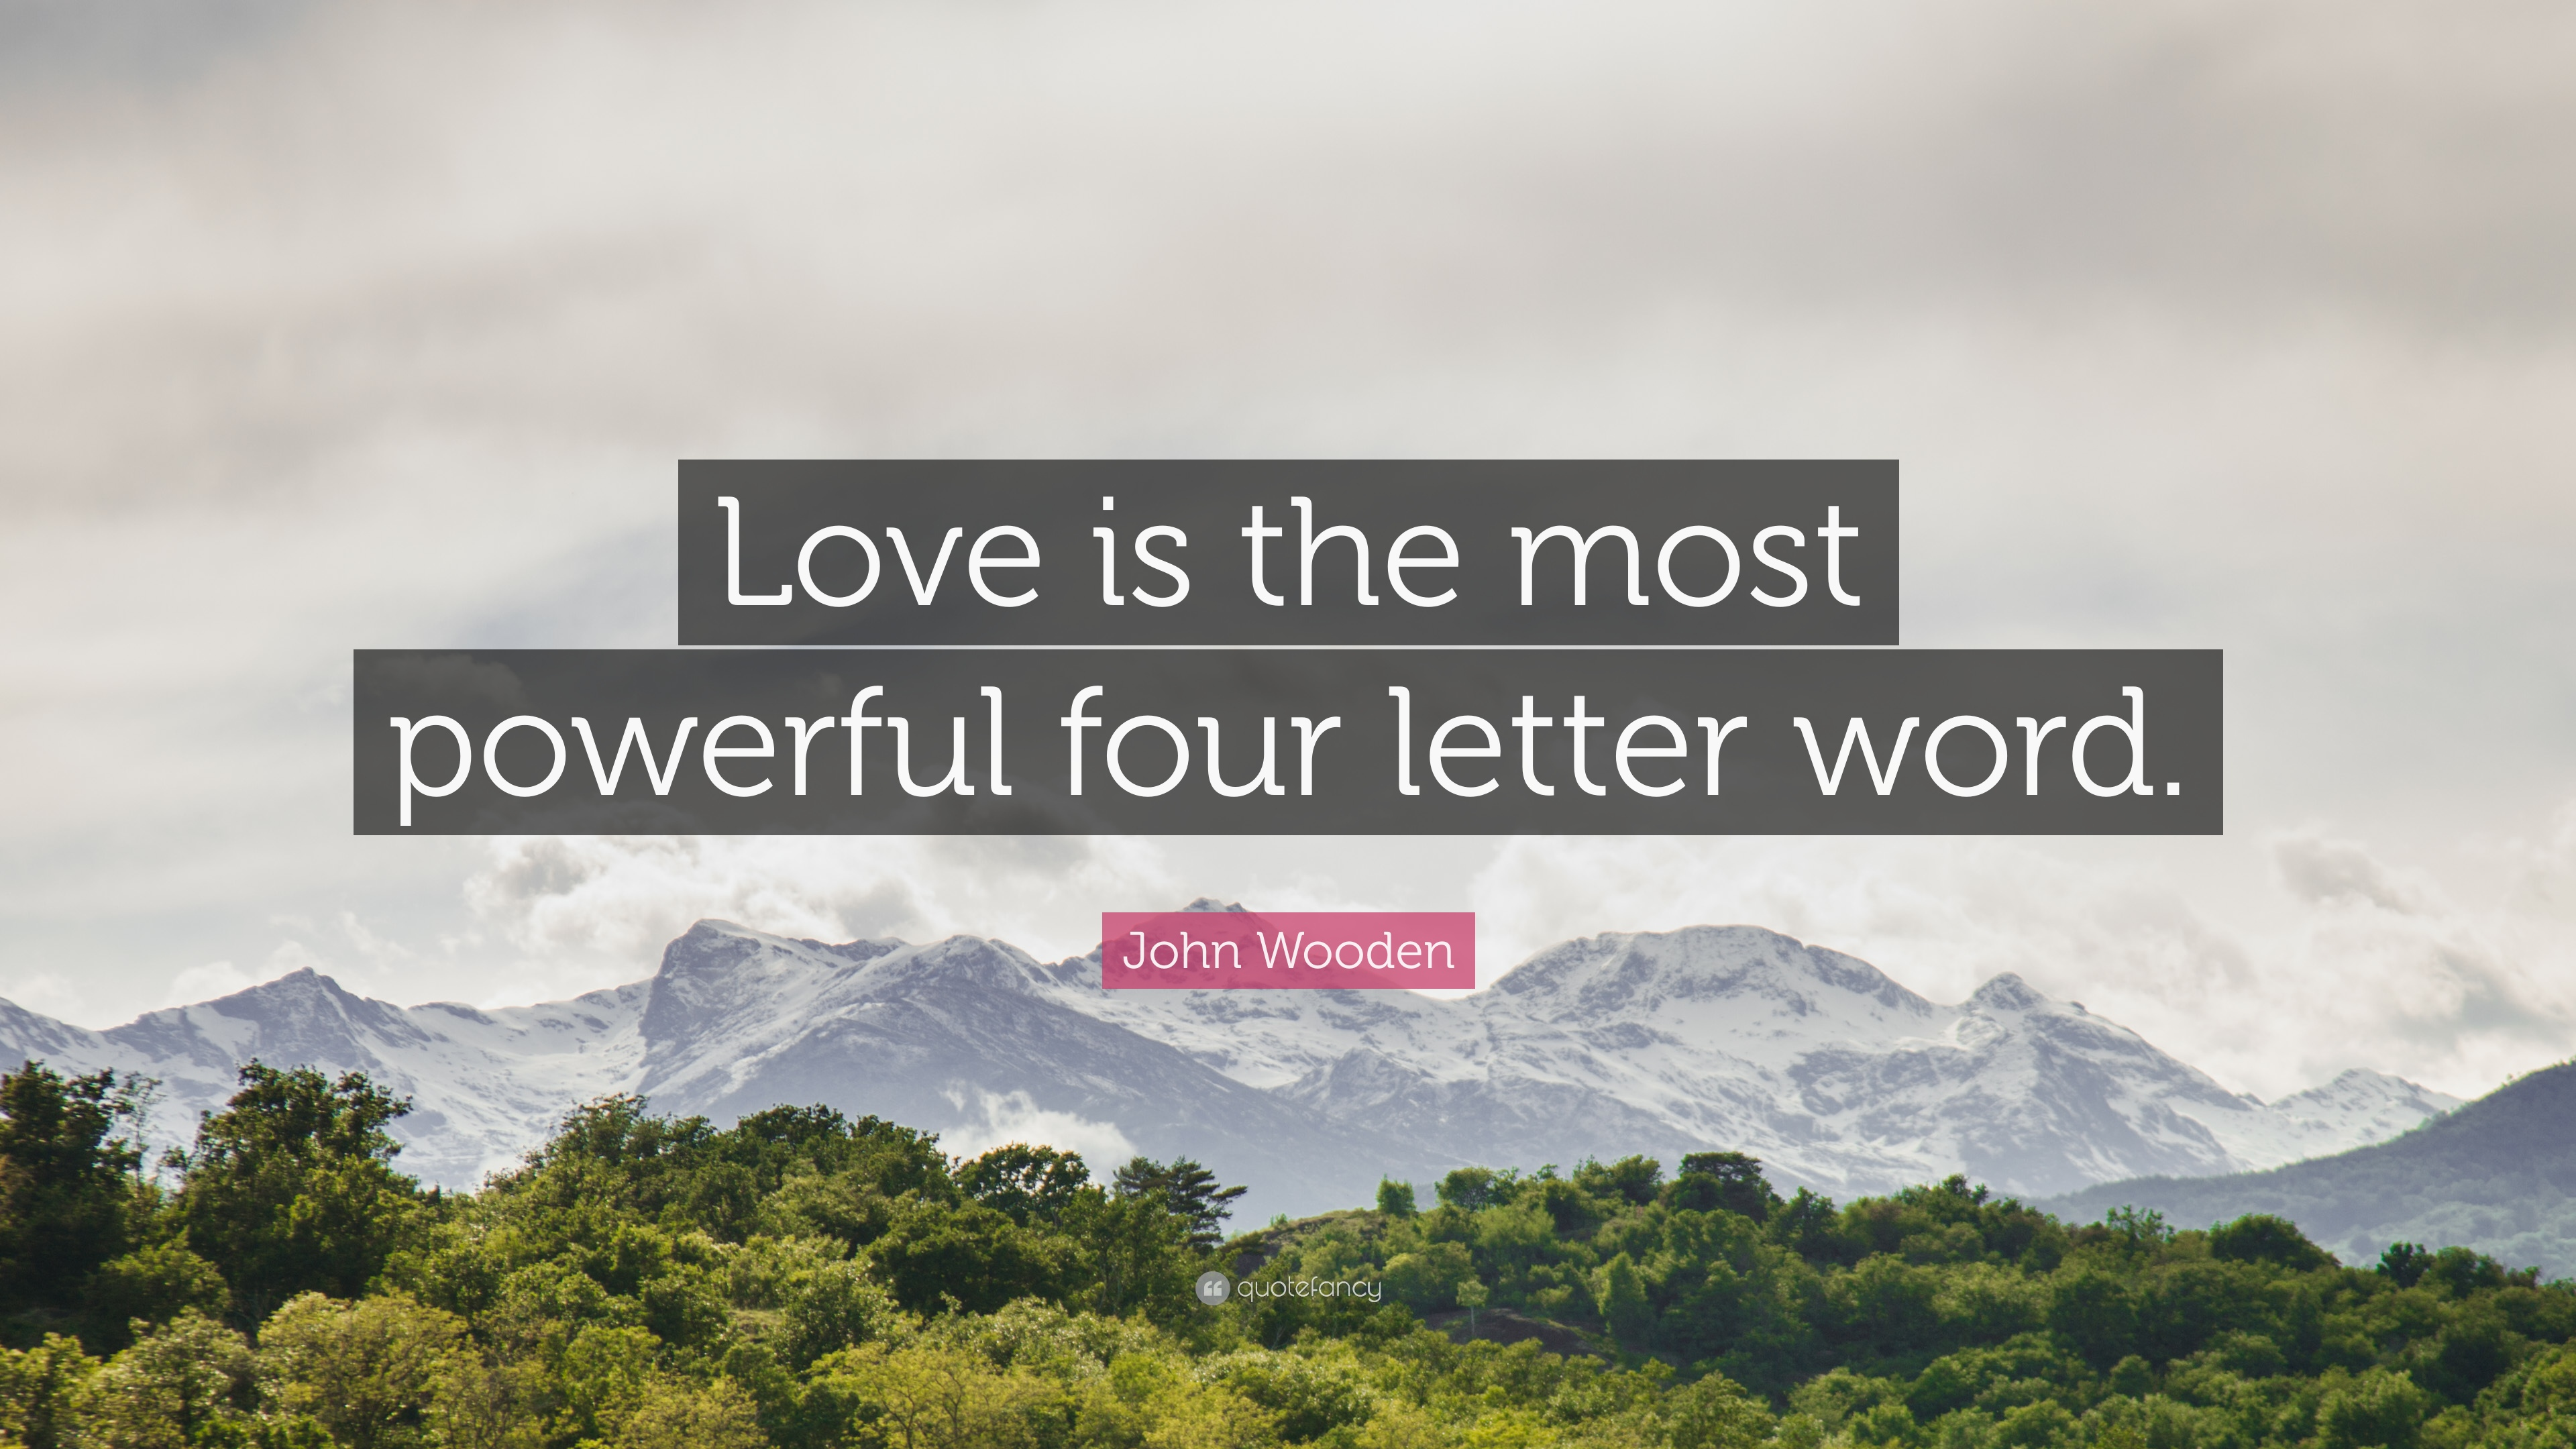 John Wooden Quote Love Is The Most Powerful Four Letter Word